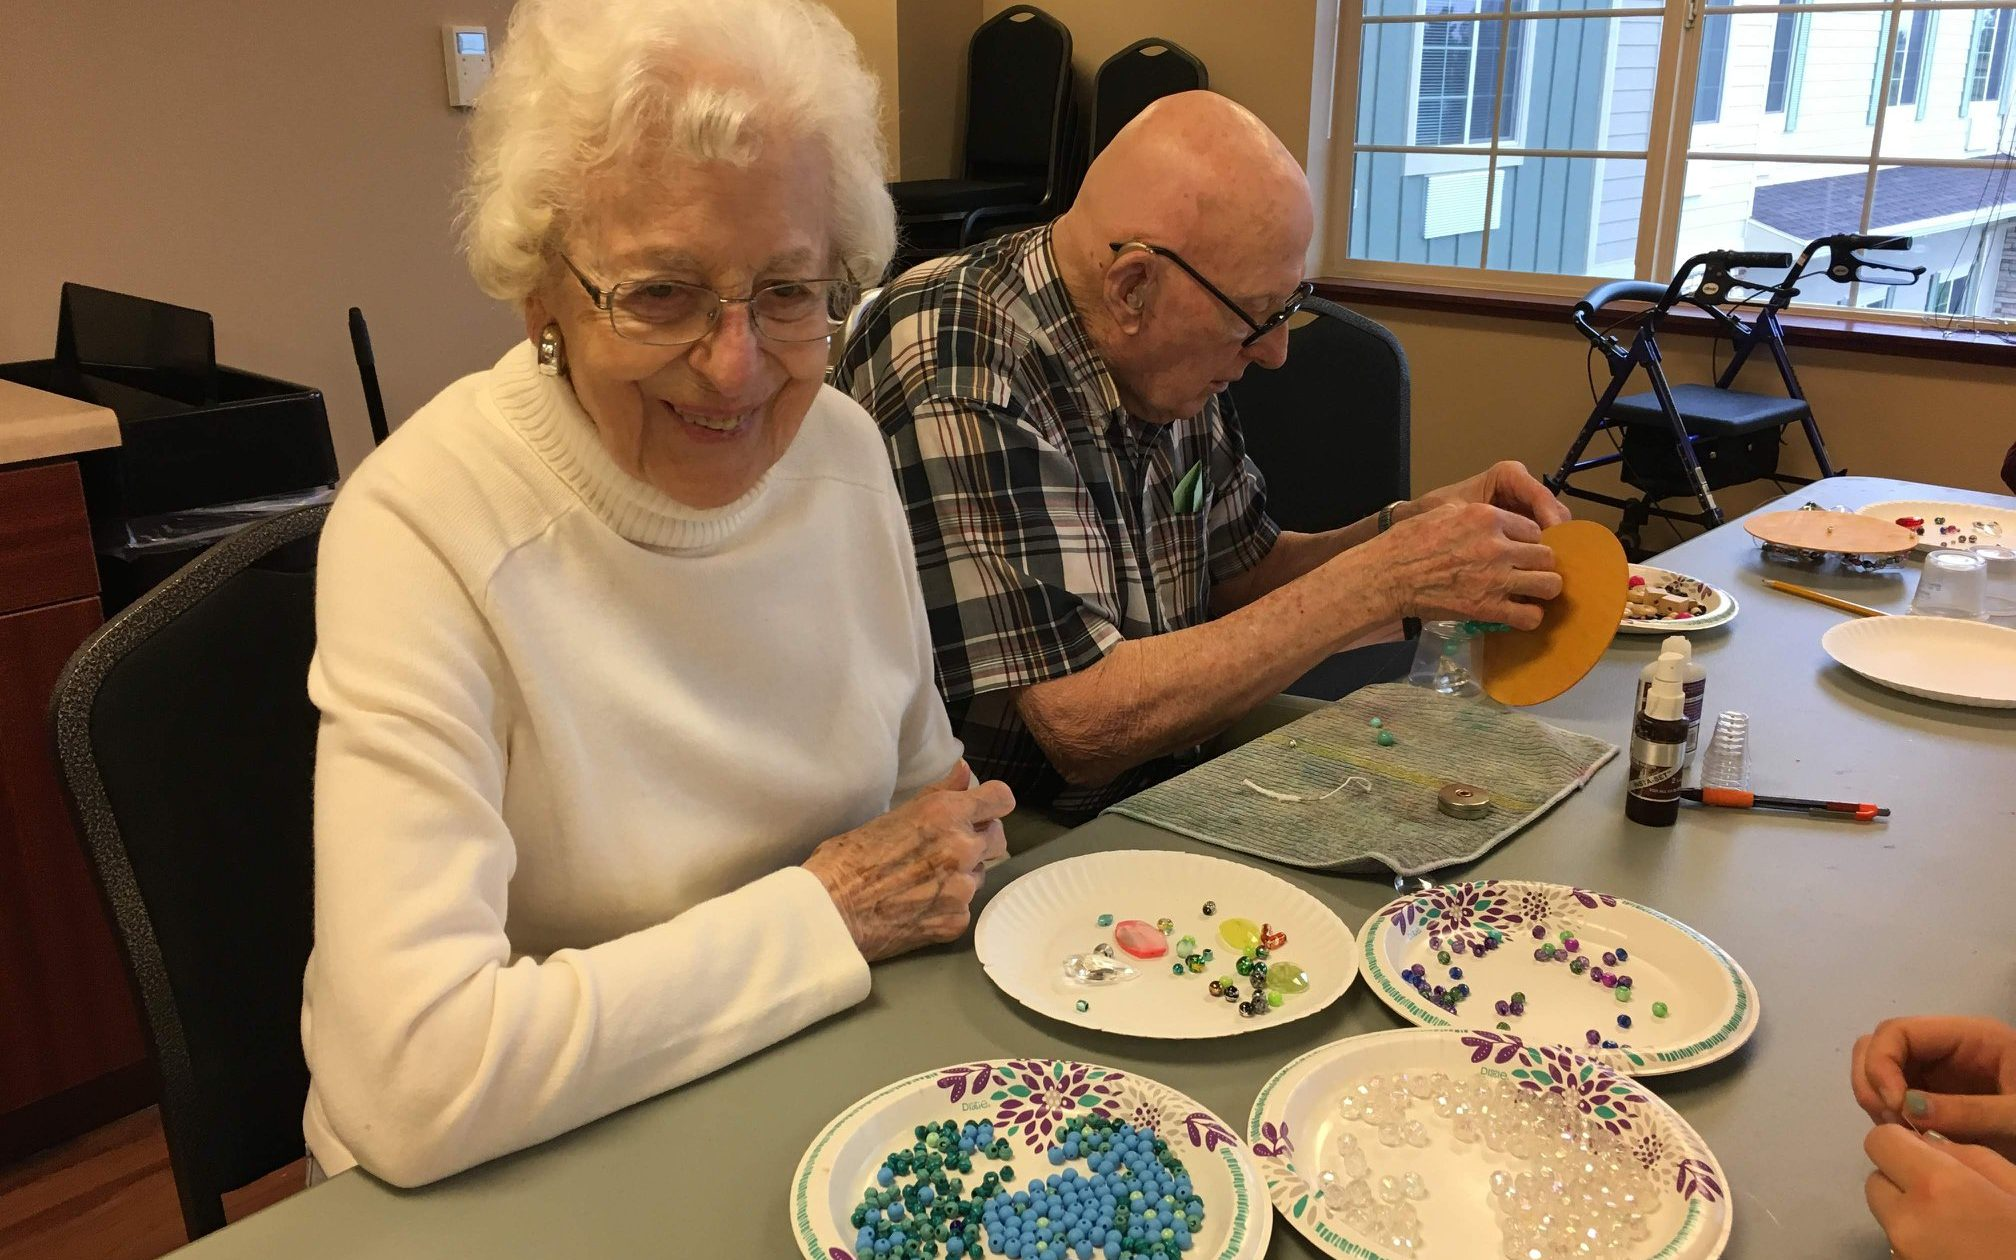 Residents doing craft projects